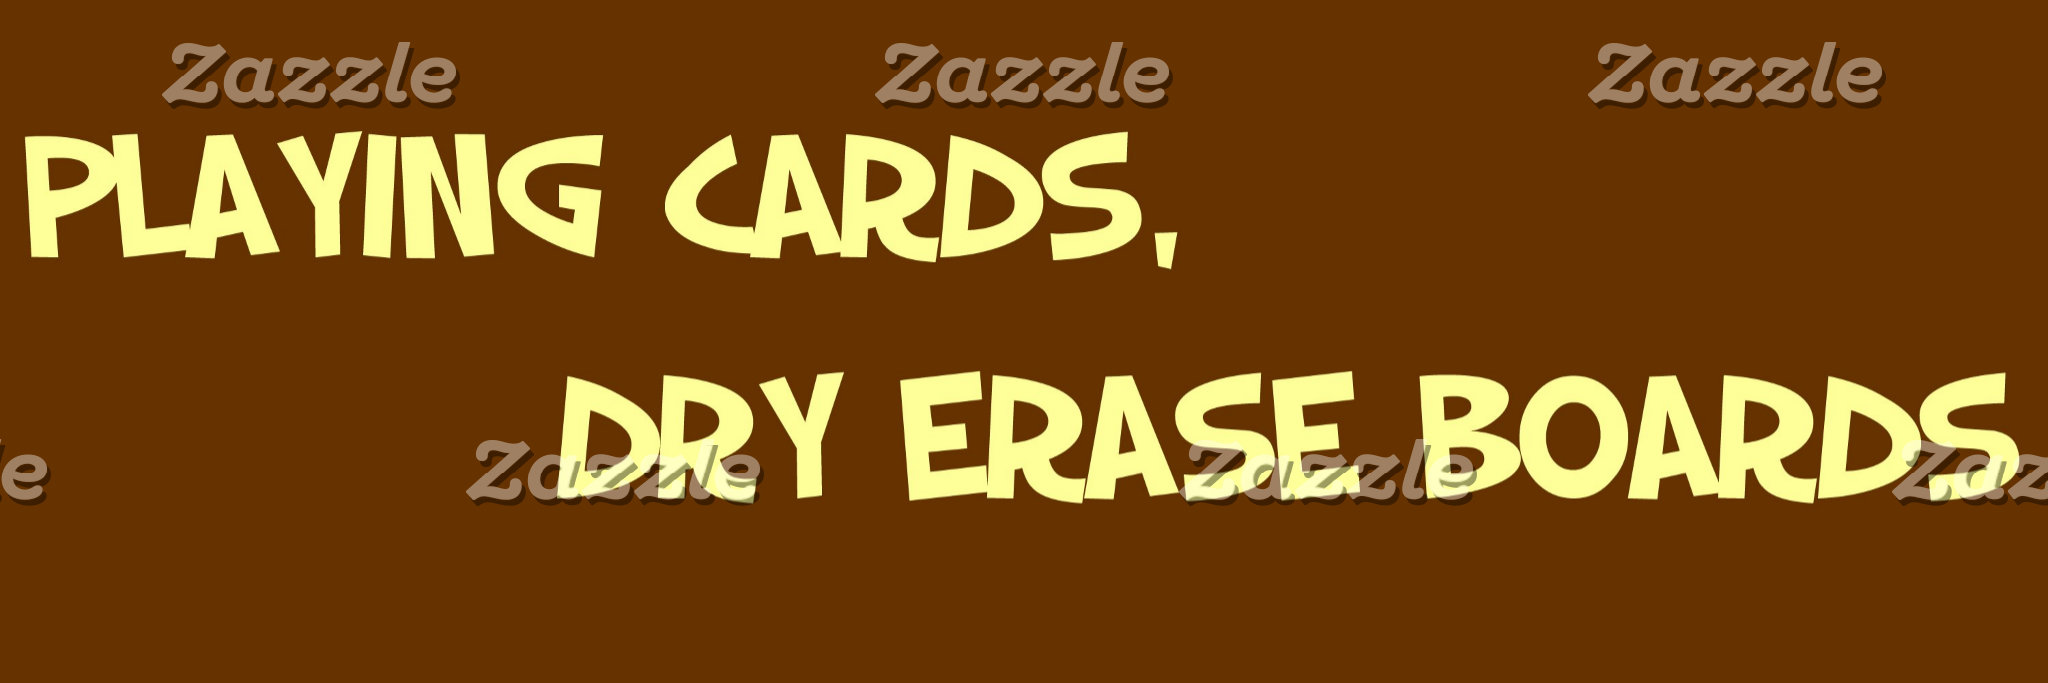 PLAYING CARDS, DRY ERASE BOARDS